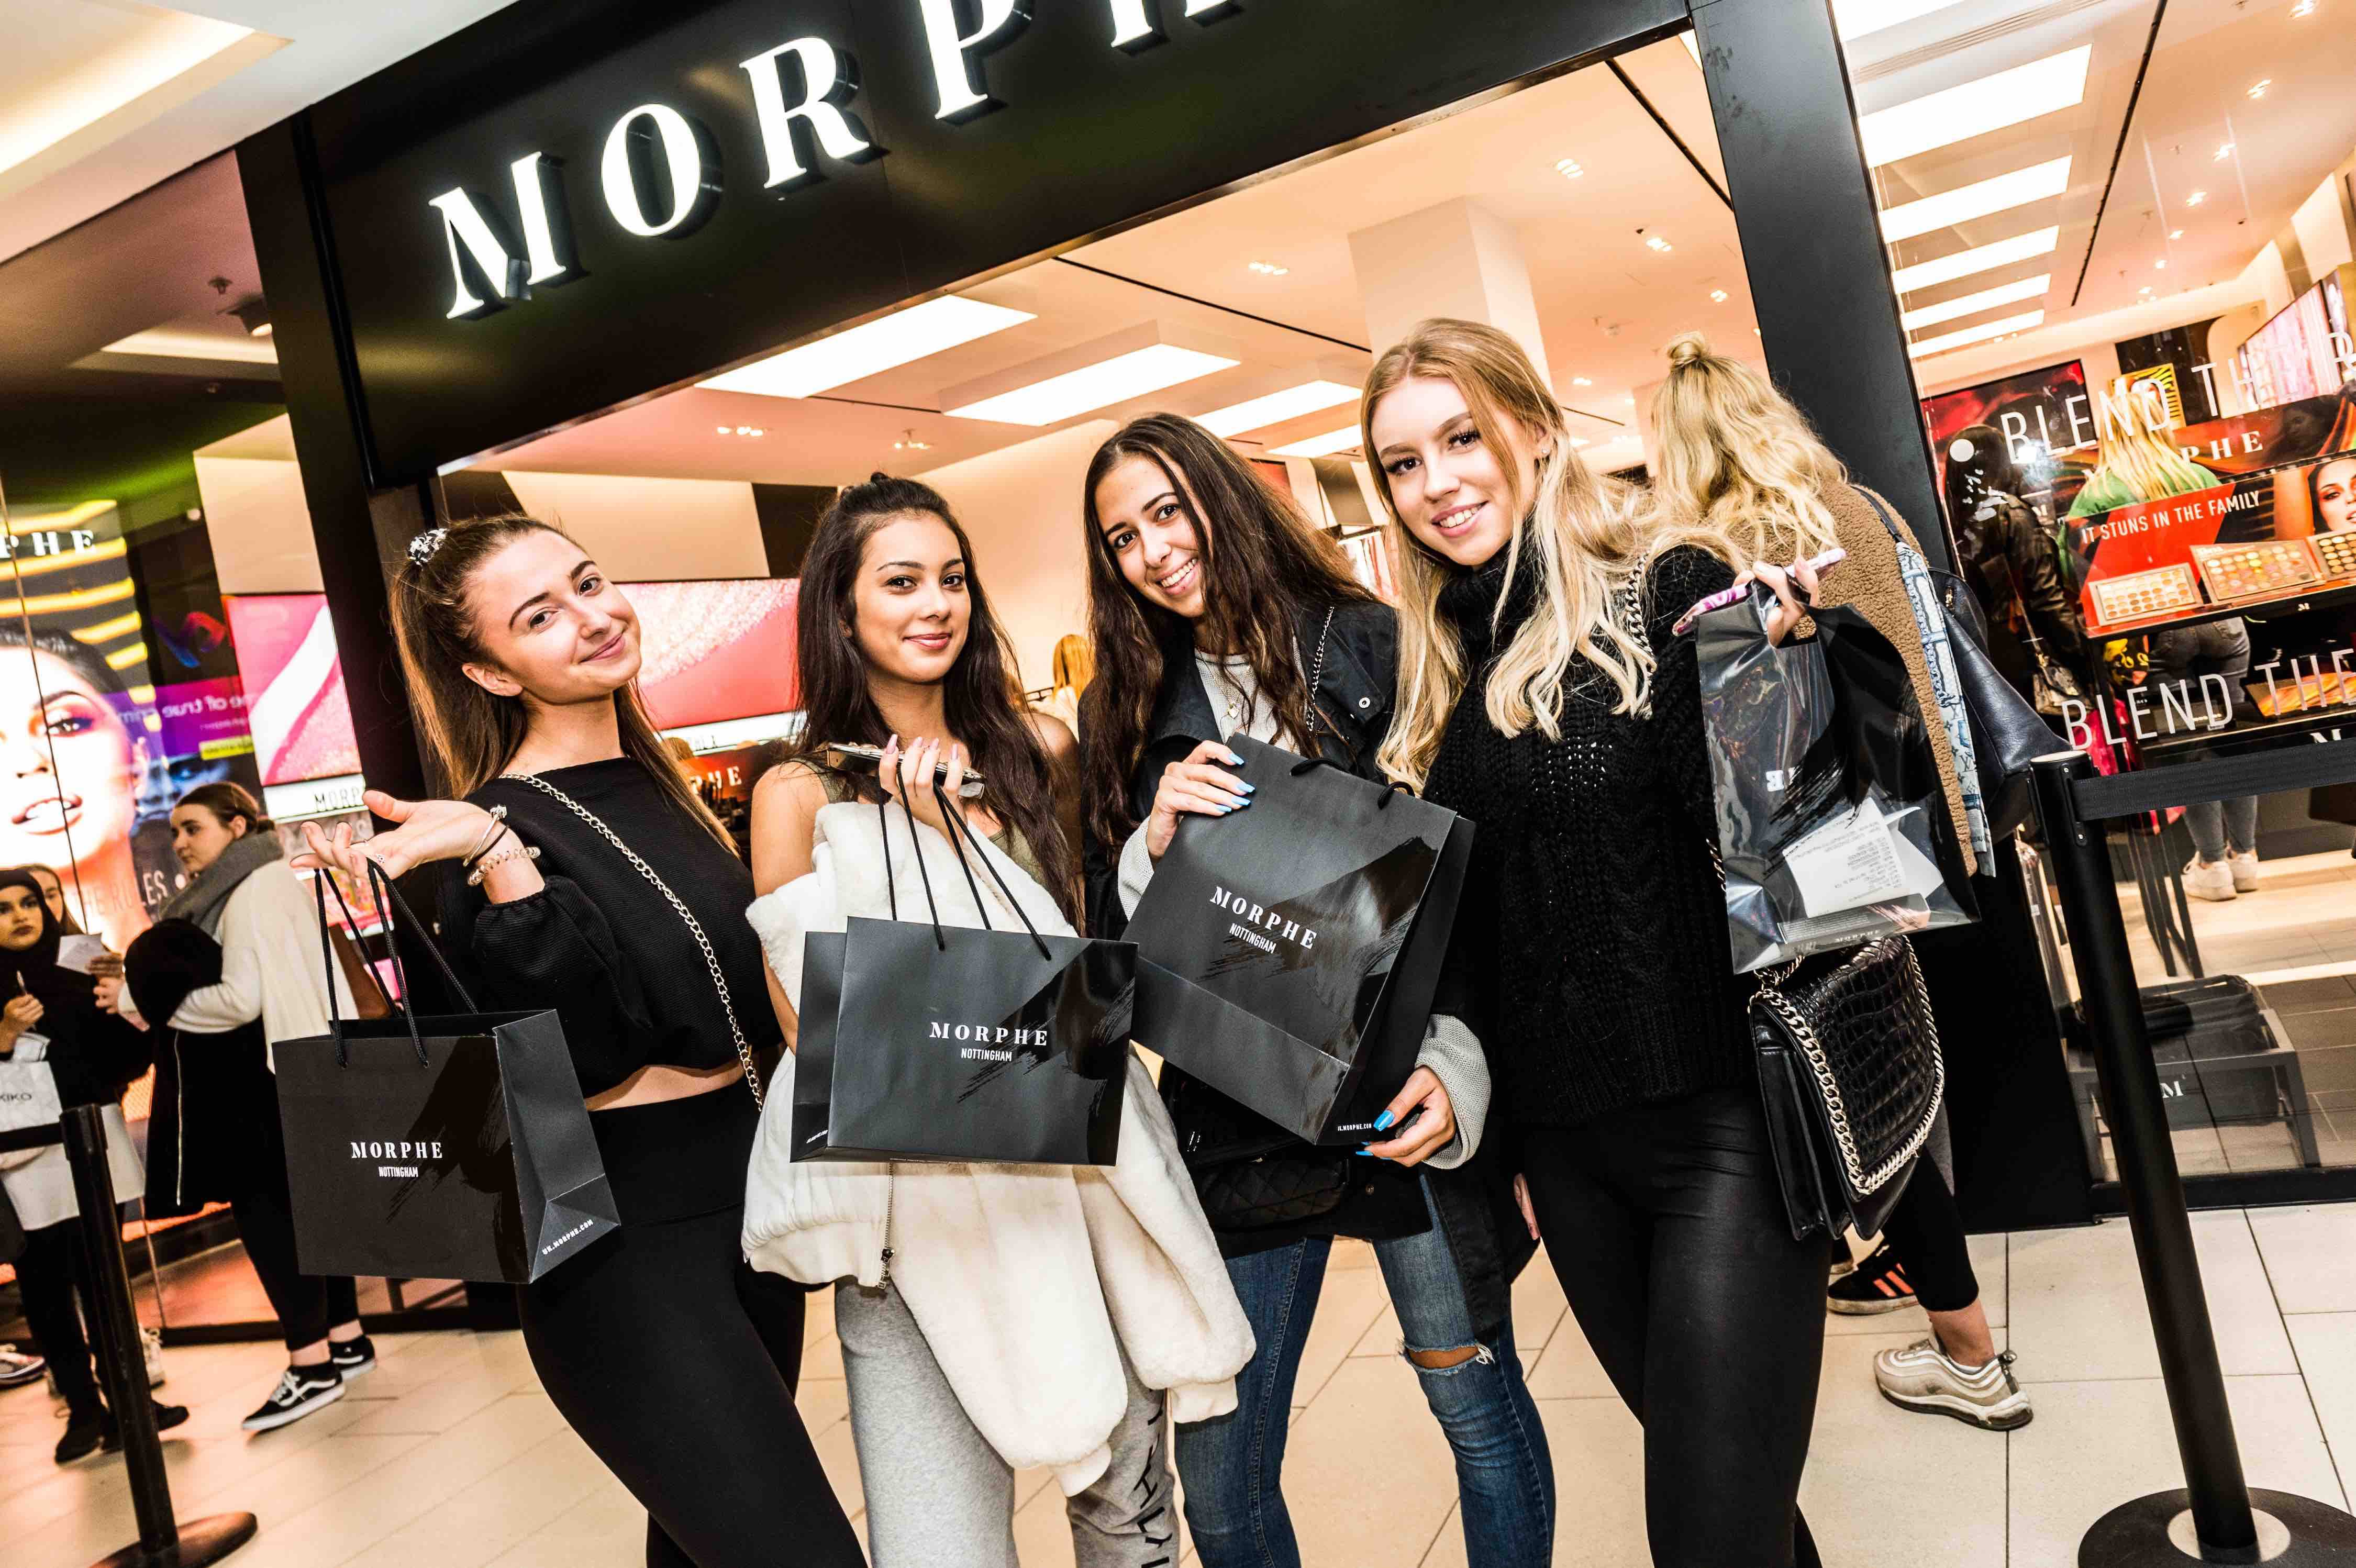 STUDENT NIGHT RETURNS TO VICTORIA CENTRE WITH ALMOST 50 RETAILERS ON BOARD